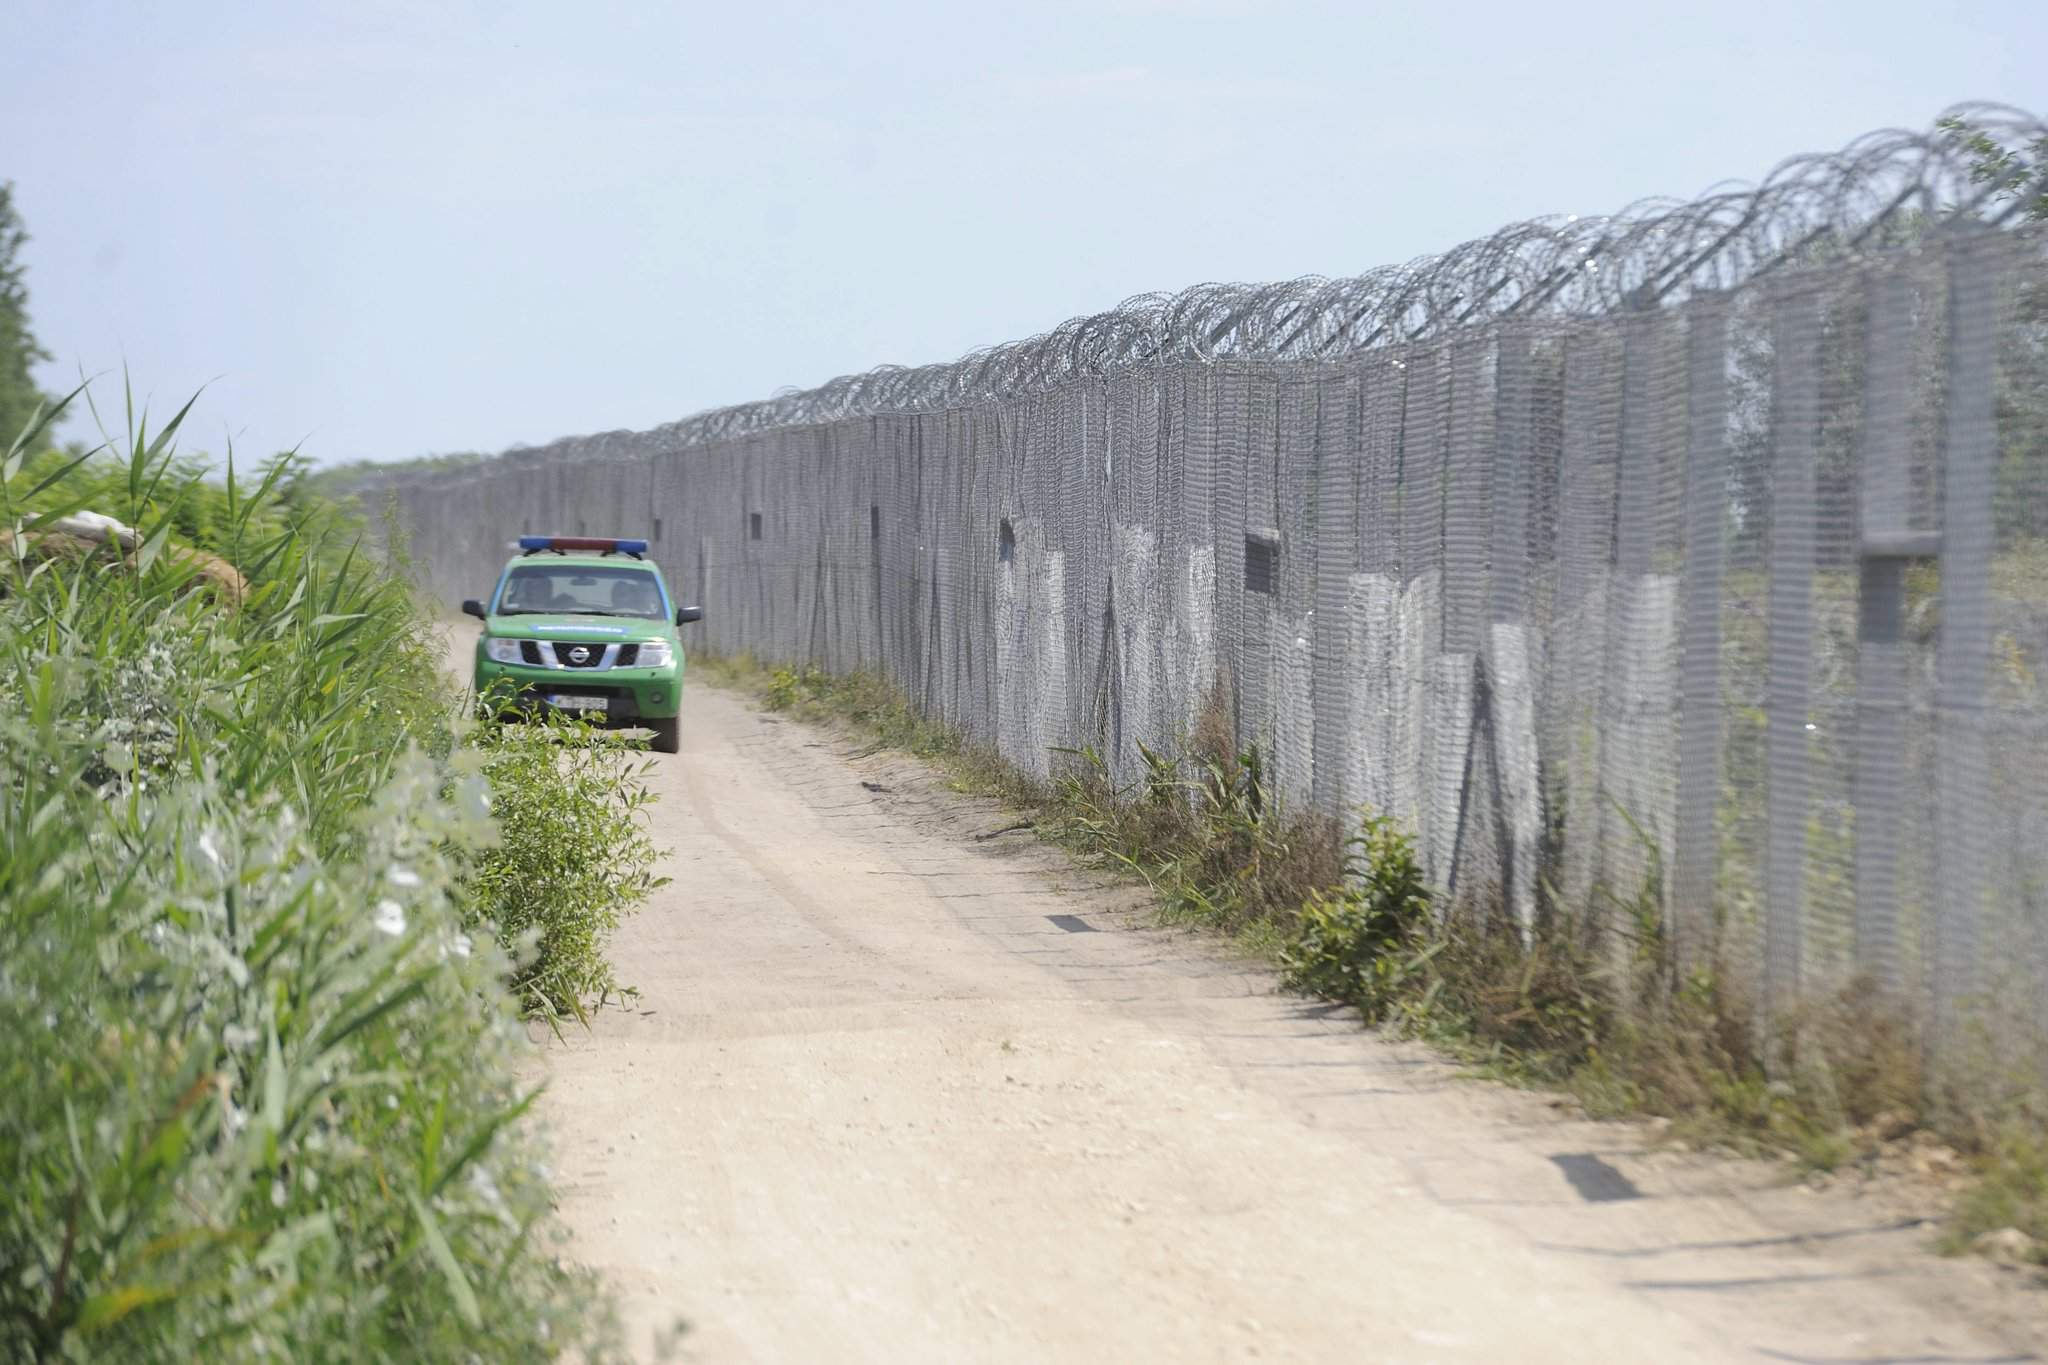 Jobbik wants EU to fully reimburse Hungary's border control costs